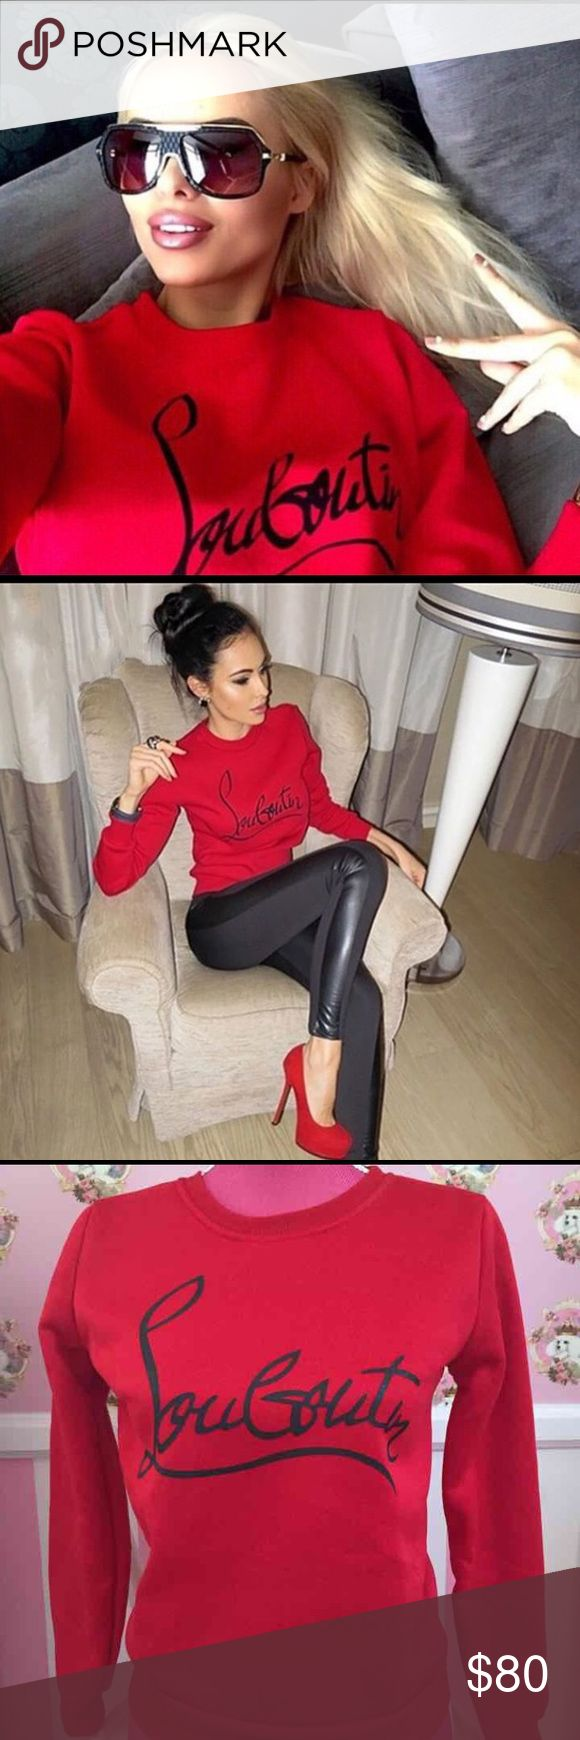 Louboutin Sweater Red Sweater with black Louboutin letters. Fashion Sweater, not a Christian Louboutin Brand. Sweaters